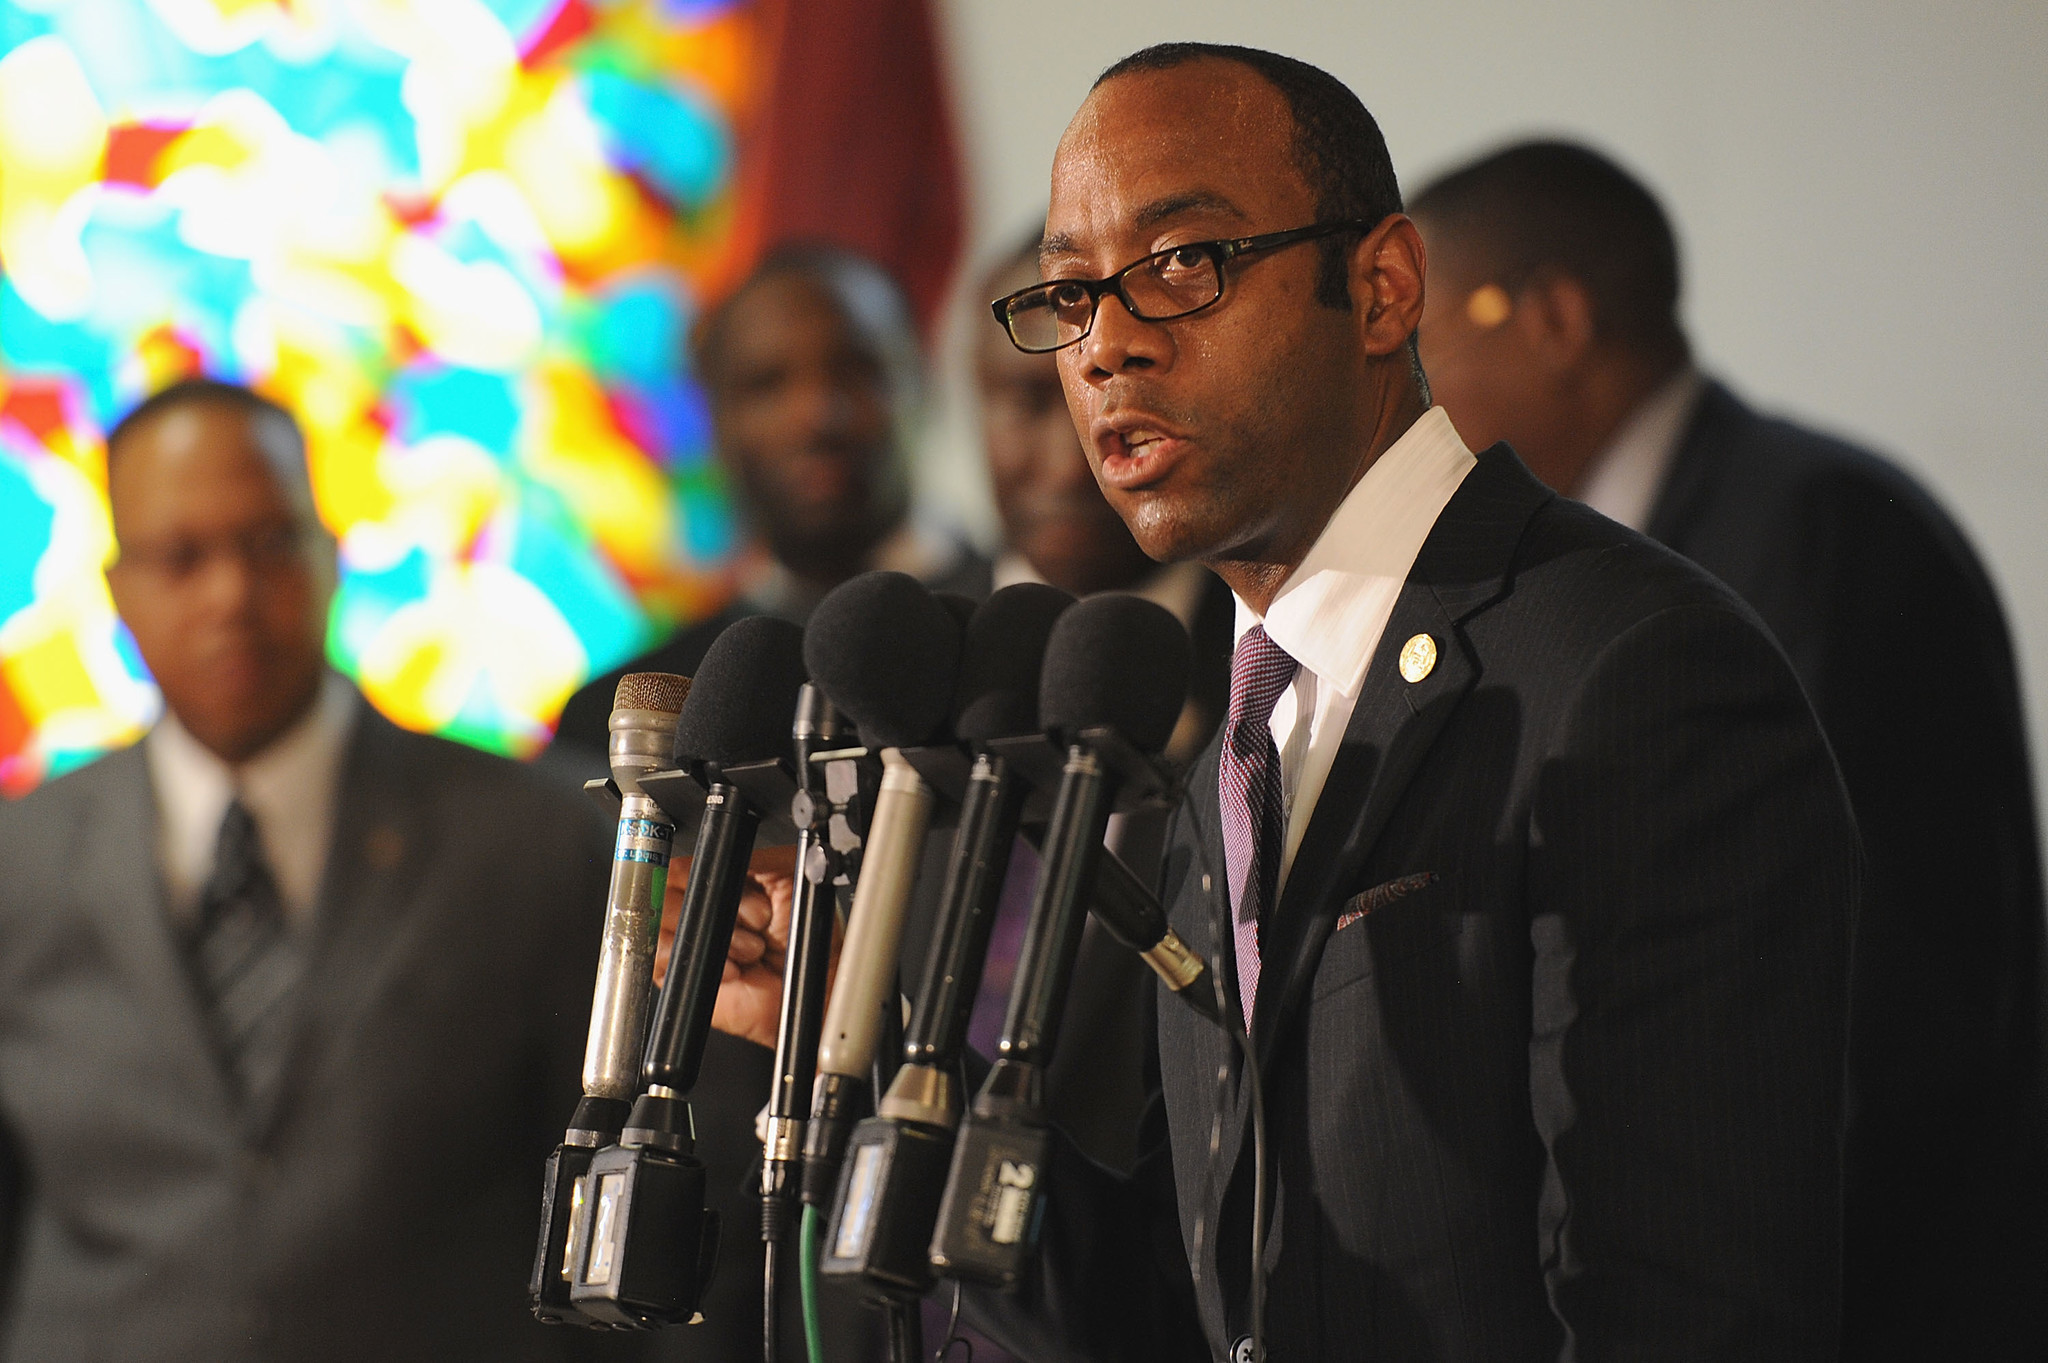 NAACP will oust its president and revamp to better combat 'an uncertain era' under Trump